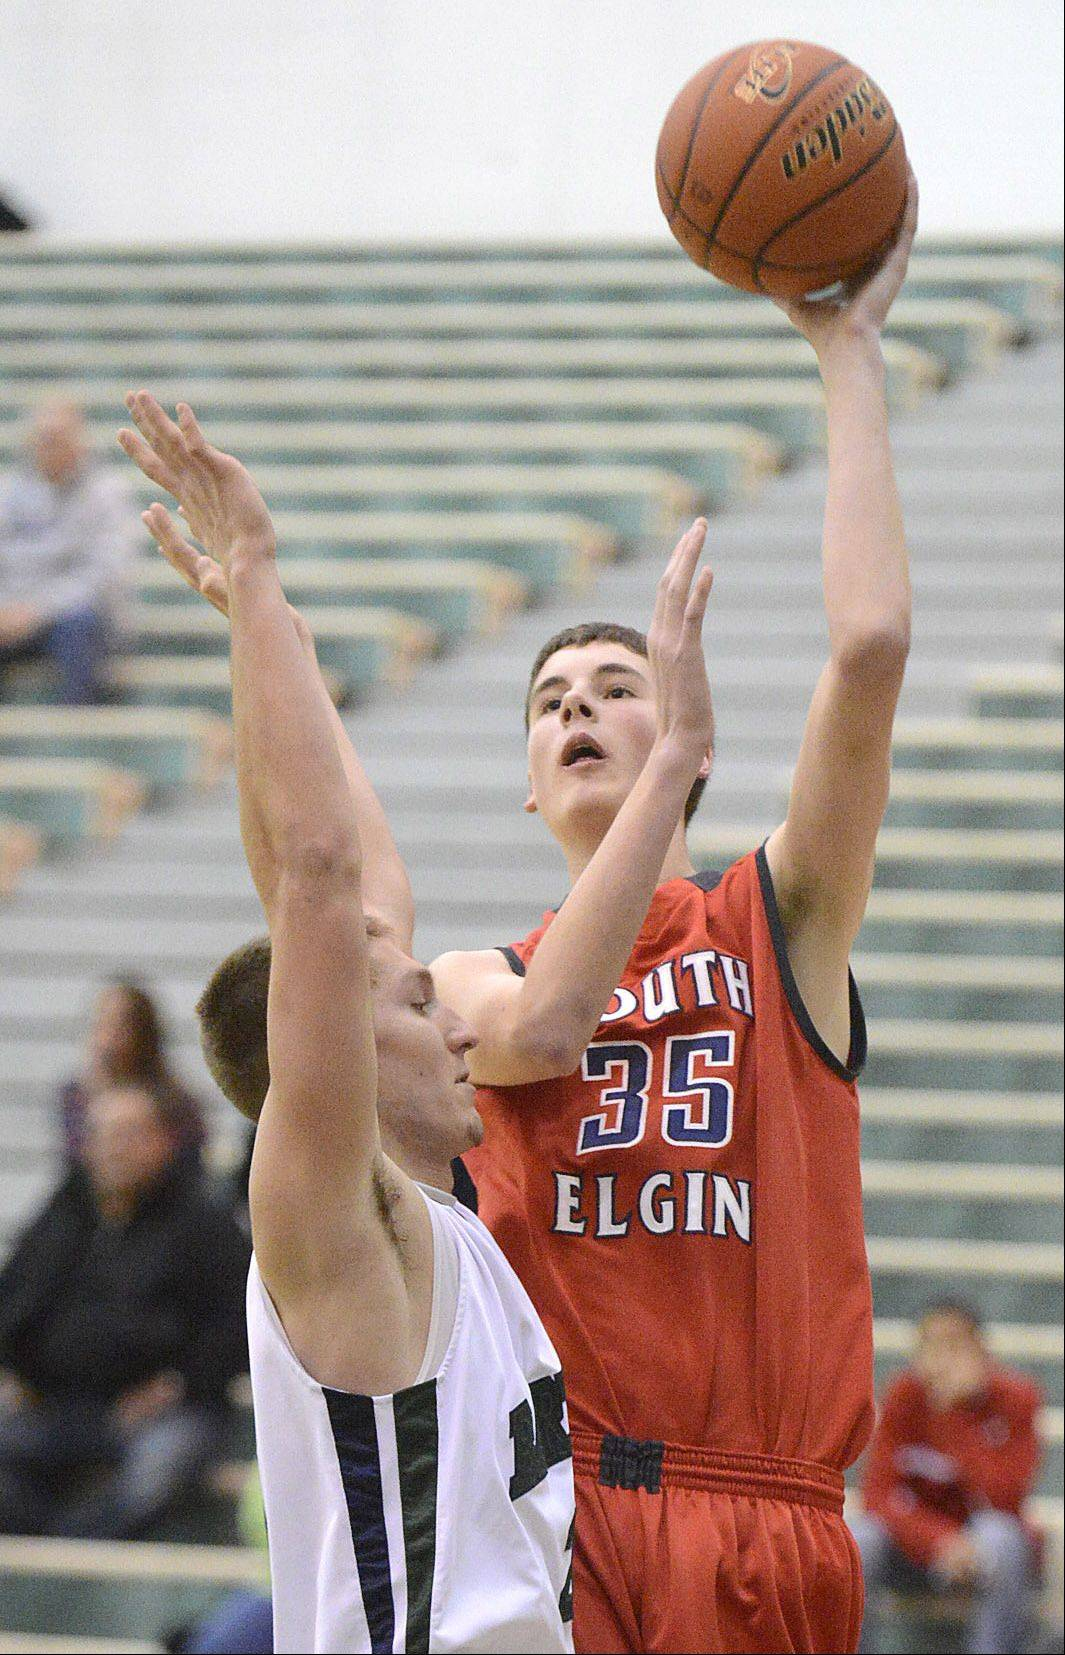 South Elgin's Tyler Hankins shoots over a block attempt by Bartlett's Brian Triphahn in the third quarter on Friday.